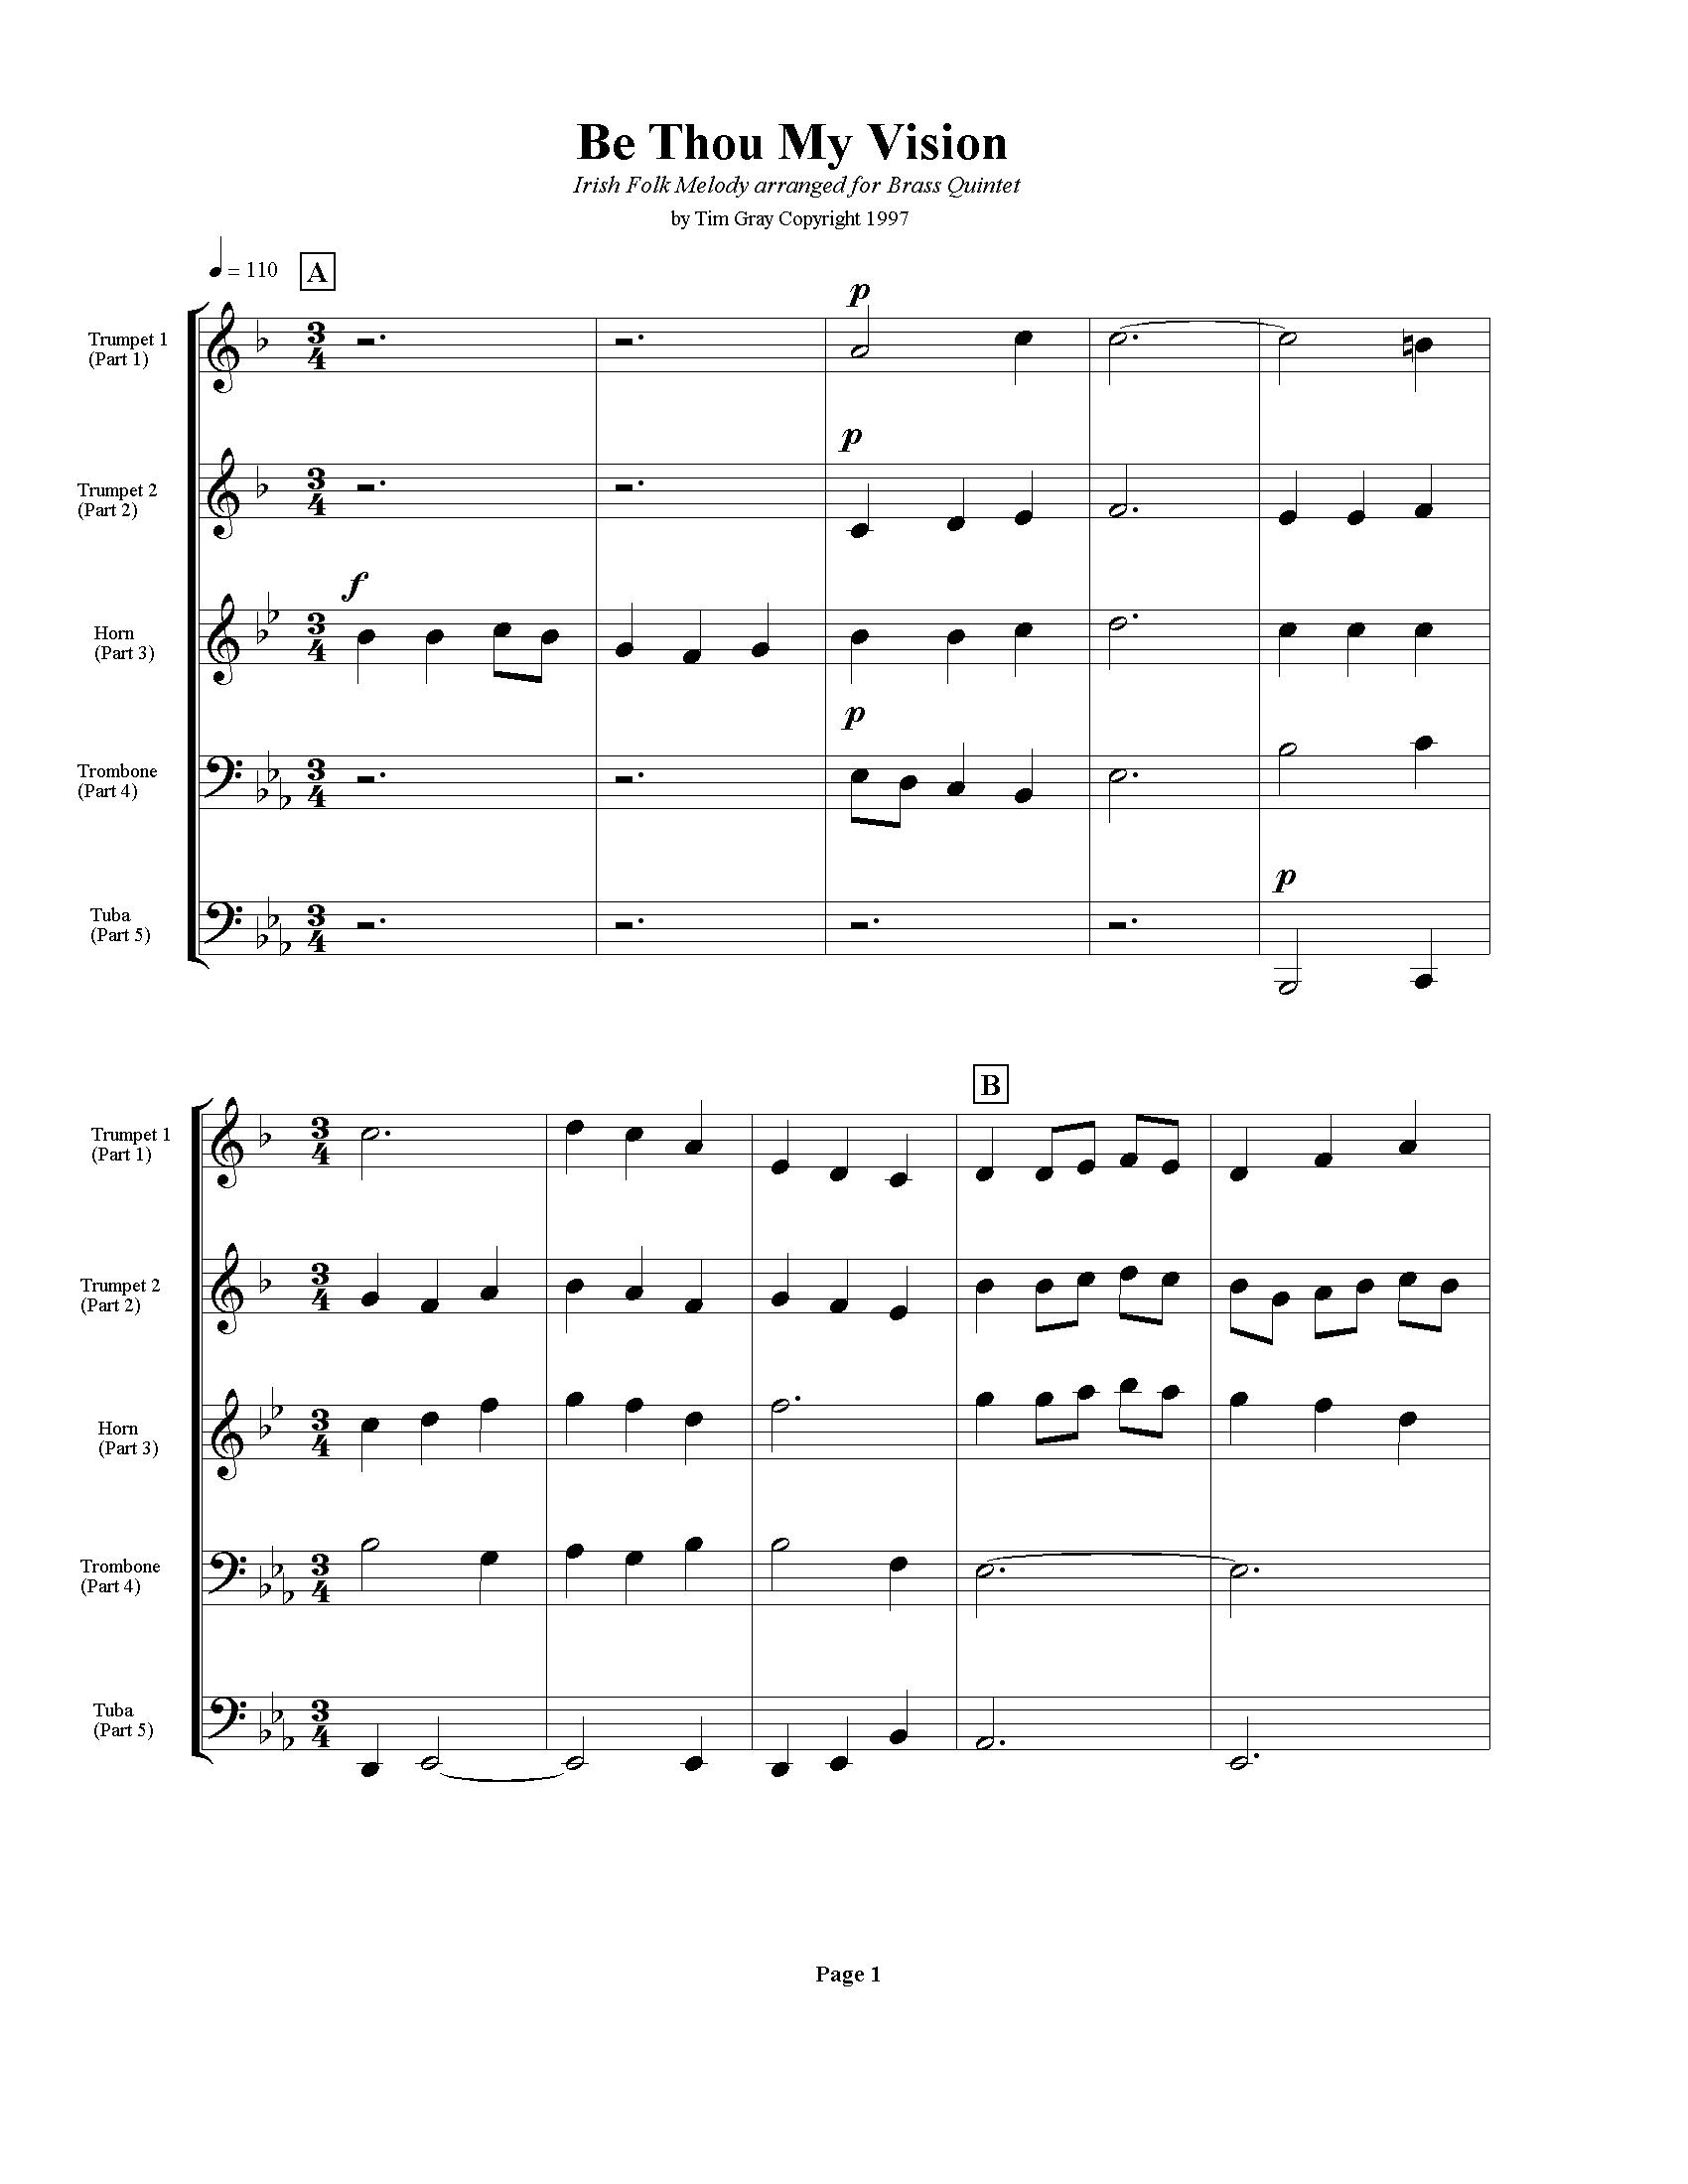 Be Thou My Vision sample page at HonoringGodMusic.com